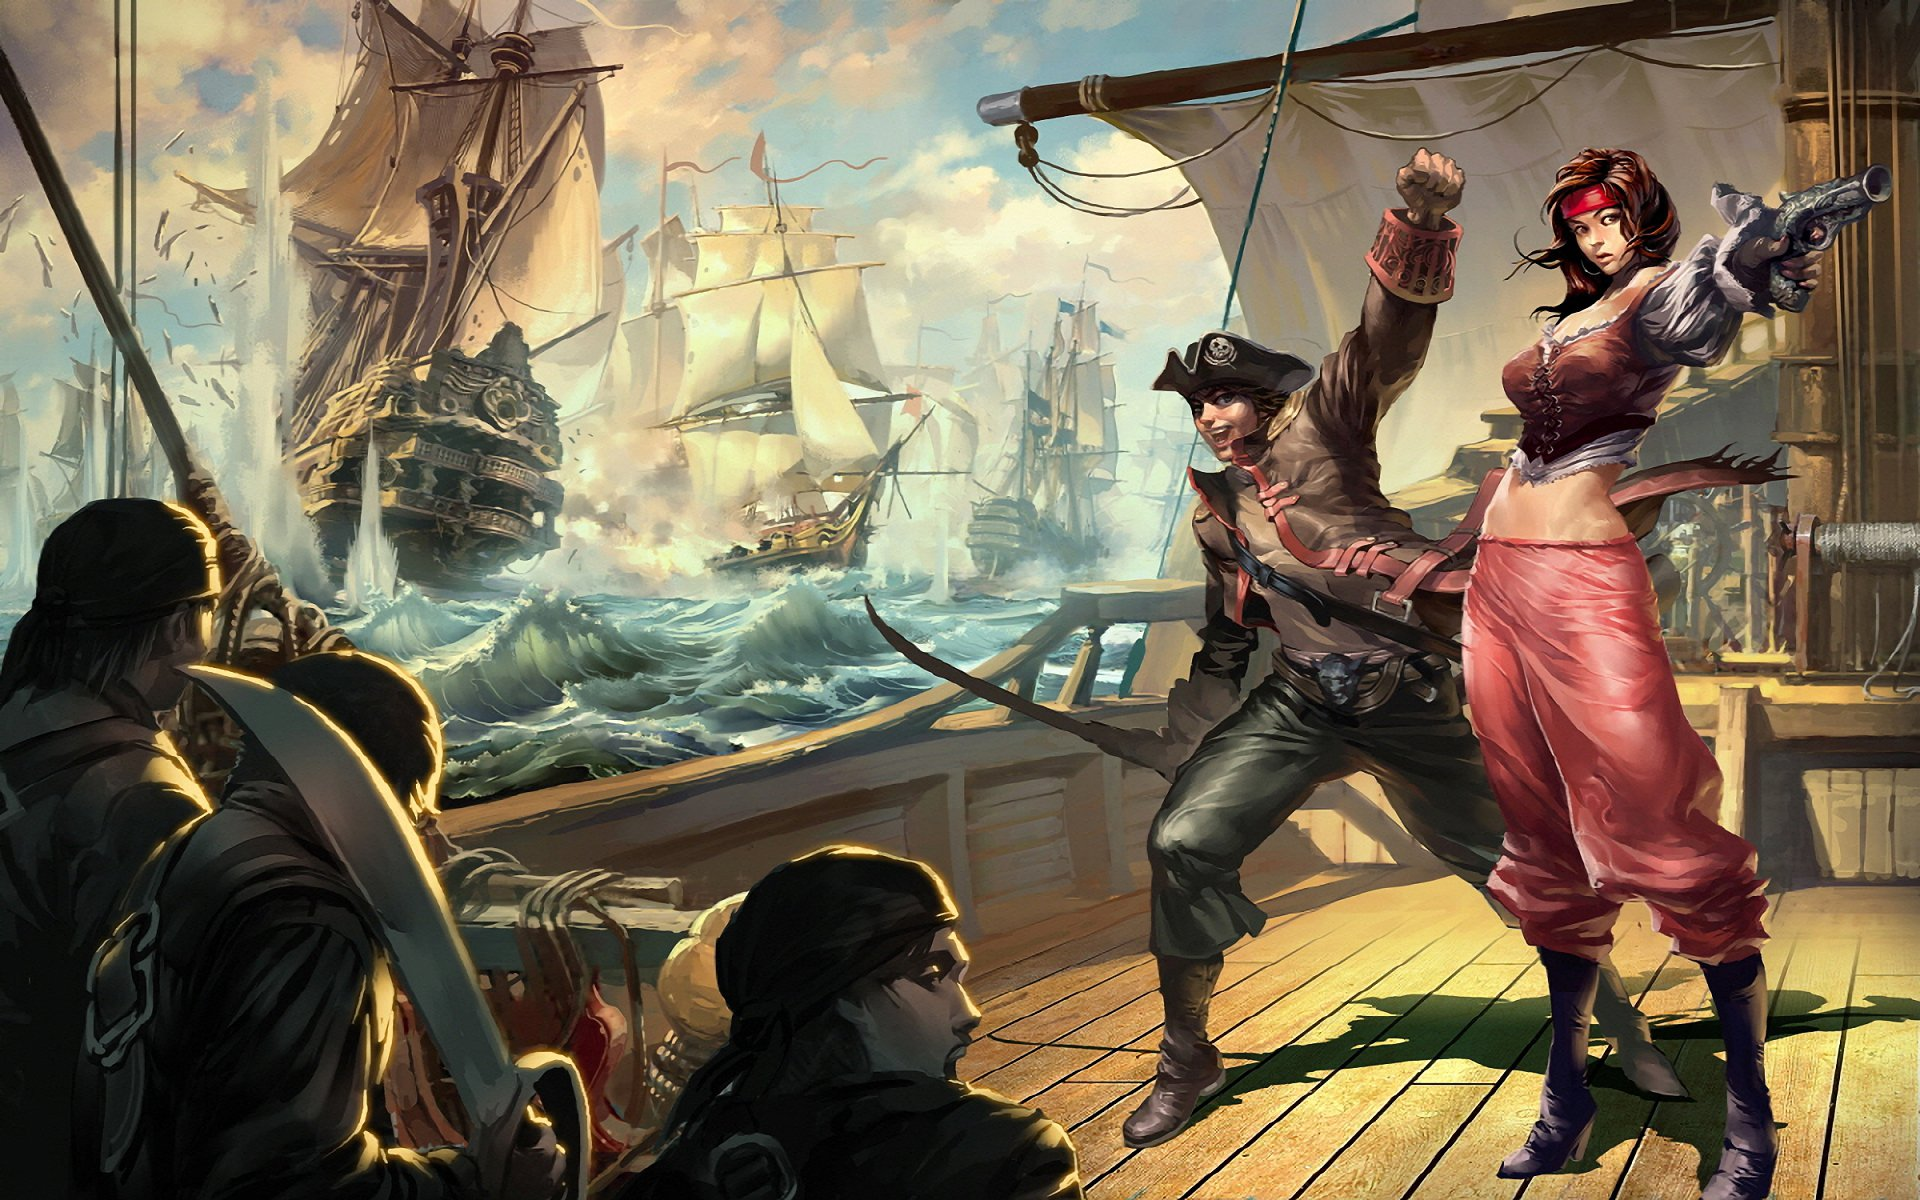 Pirate Wallpaper Hd Resolution Is Cool Wallpapers